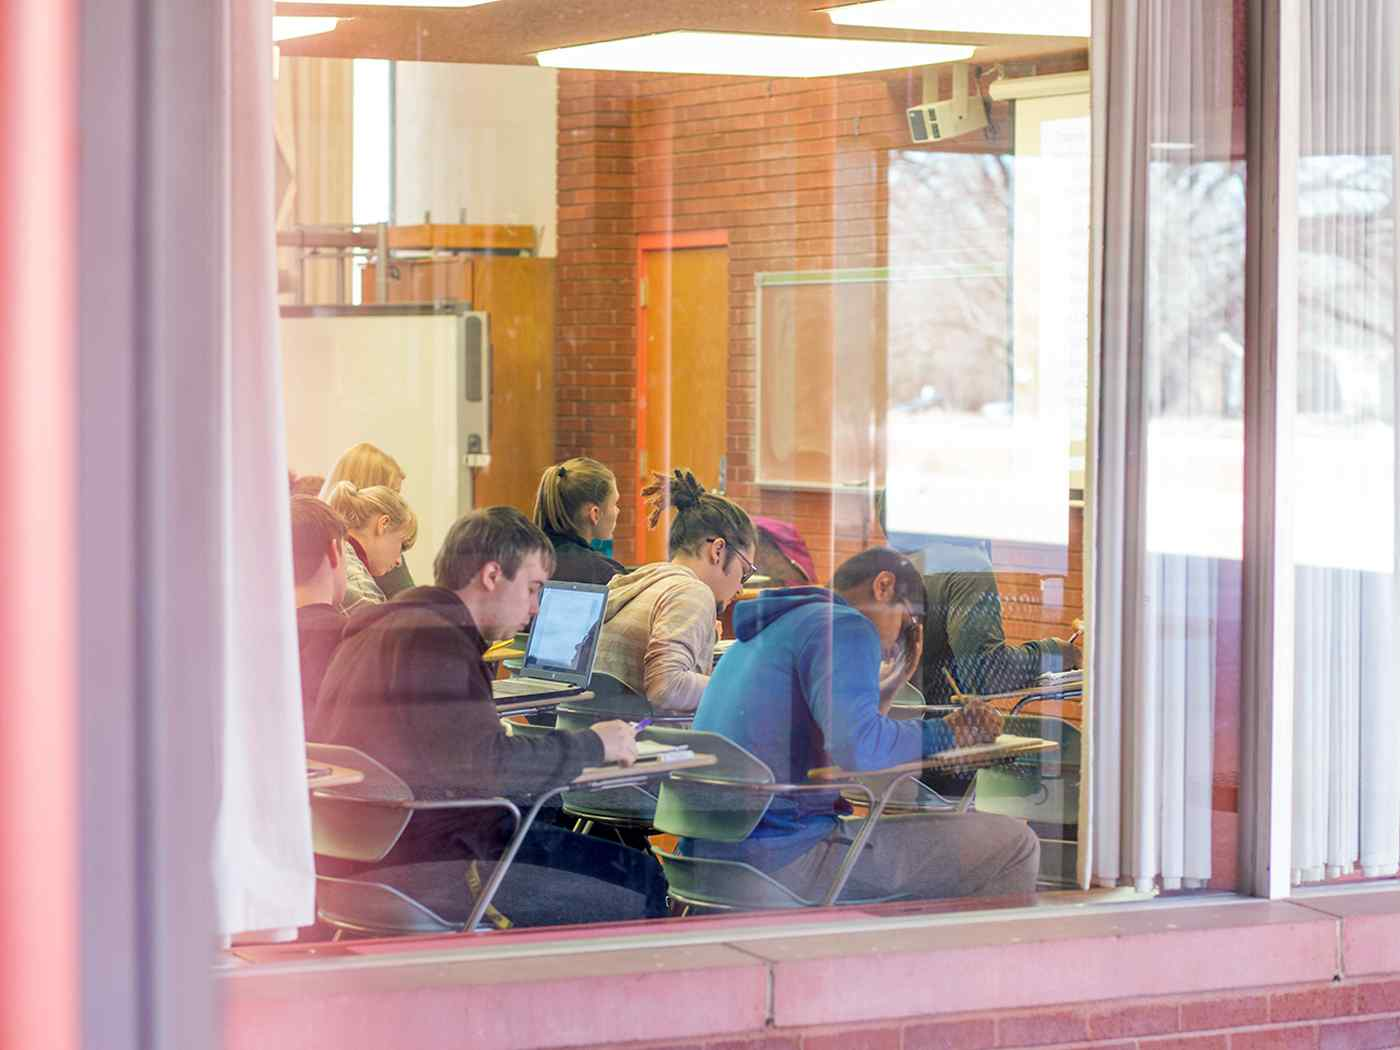 Students studying in class.